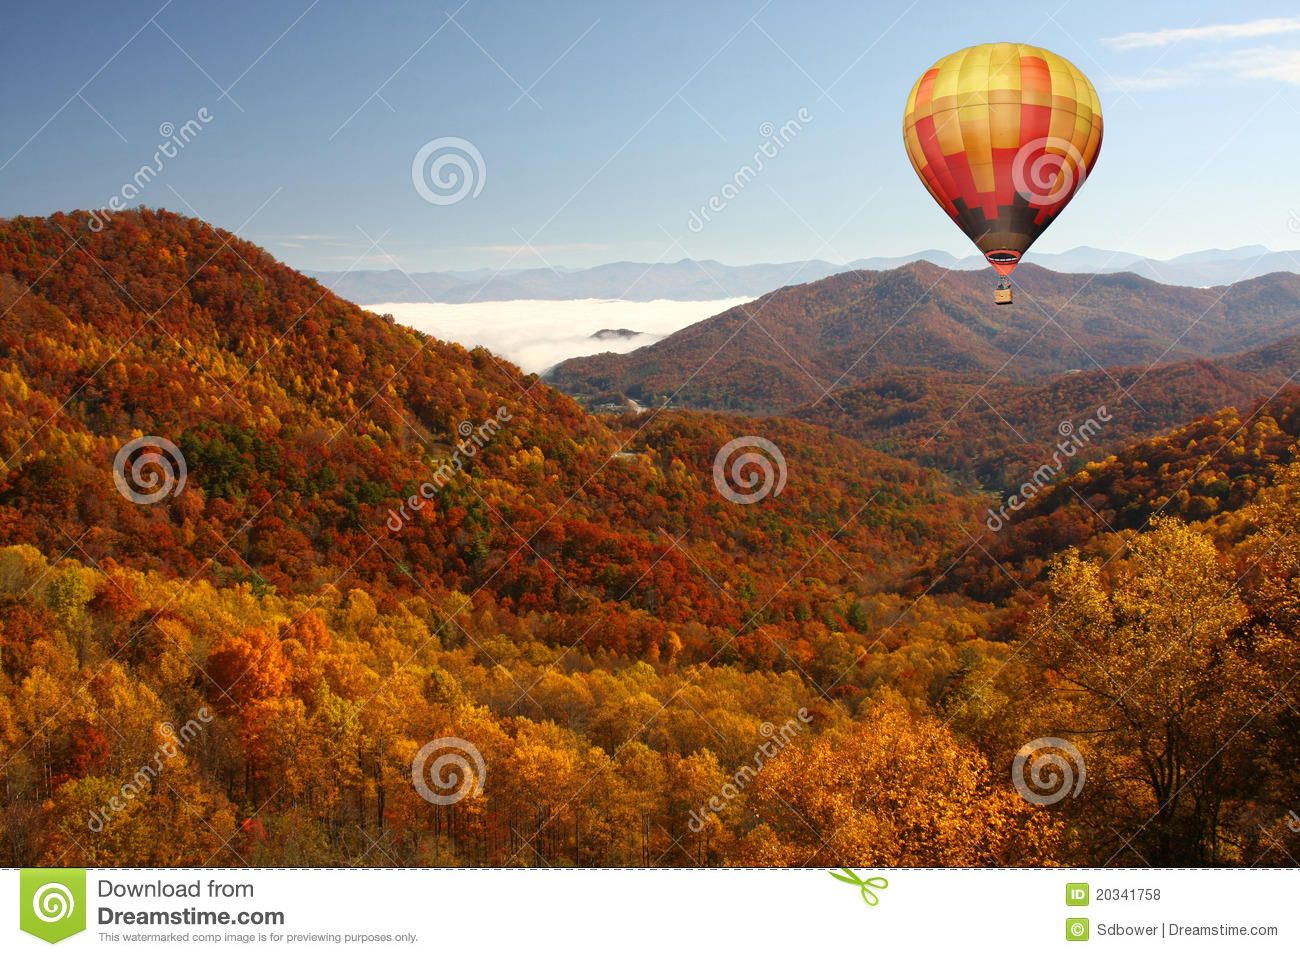 Gatlinburg In The Fall Wallpaper Hot Air Balloon Over Smokey Mountains In The Fall Royalty